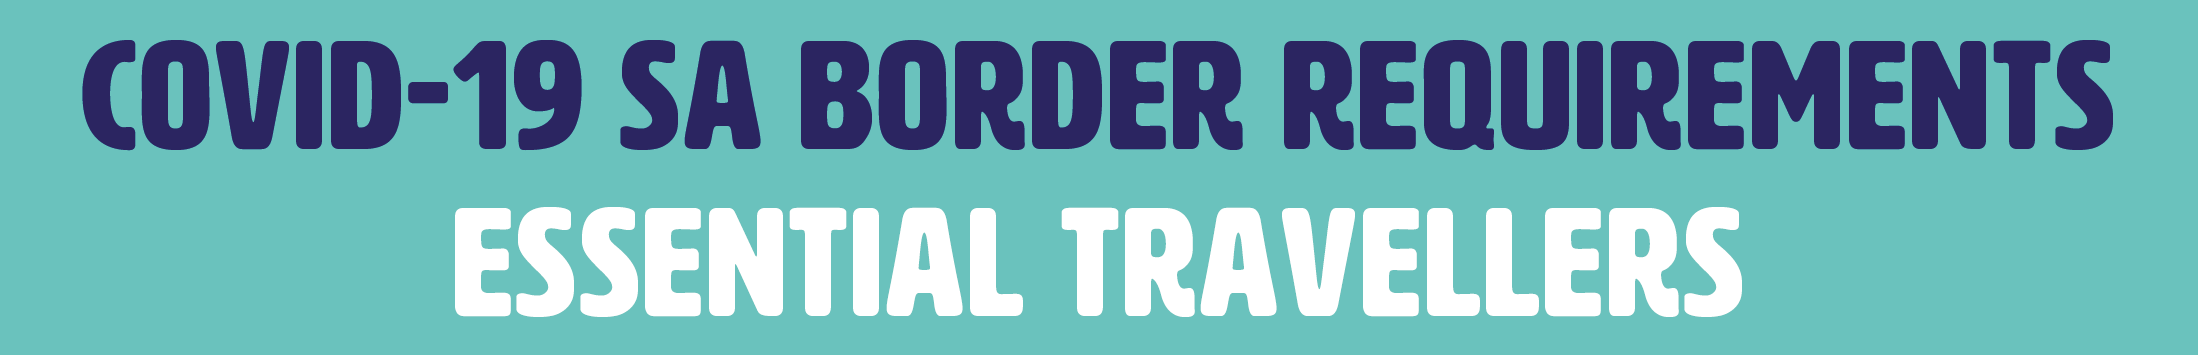 COVID-19 SA BORDER REQUIREMENTS - ESSENTIAL TRAVELLERS